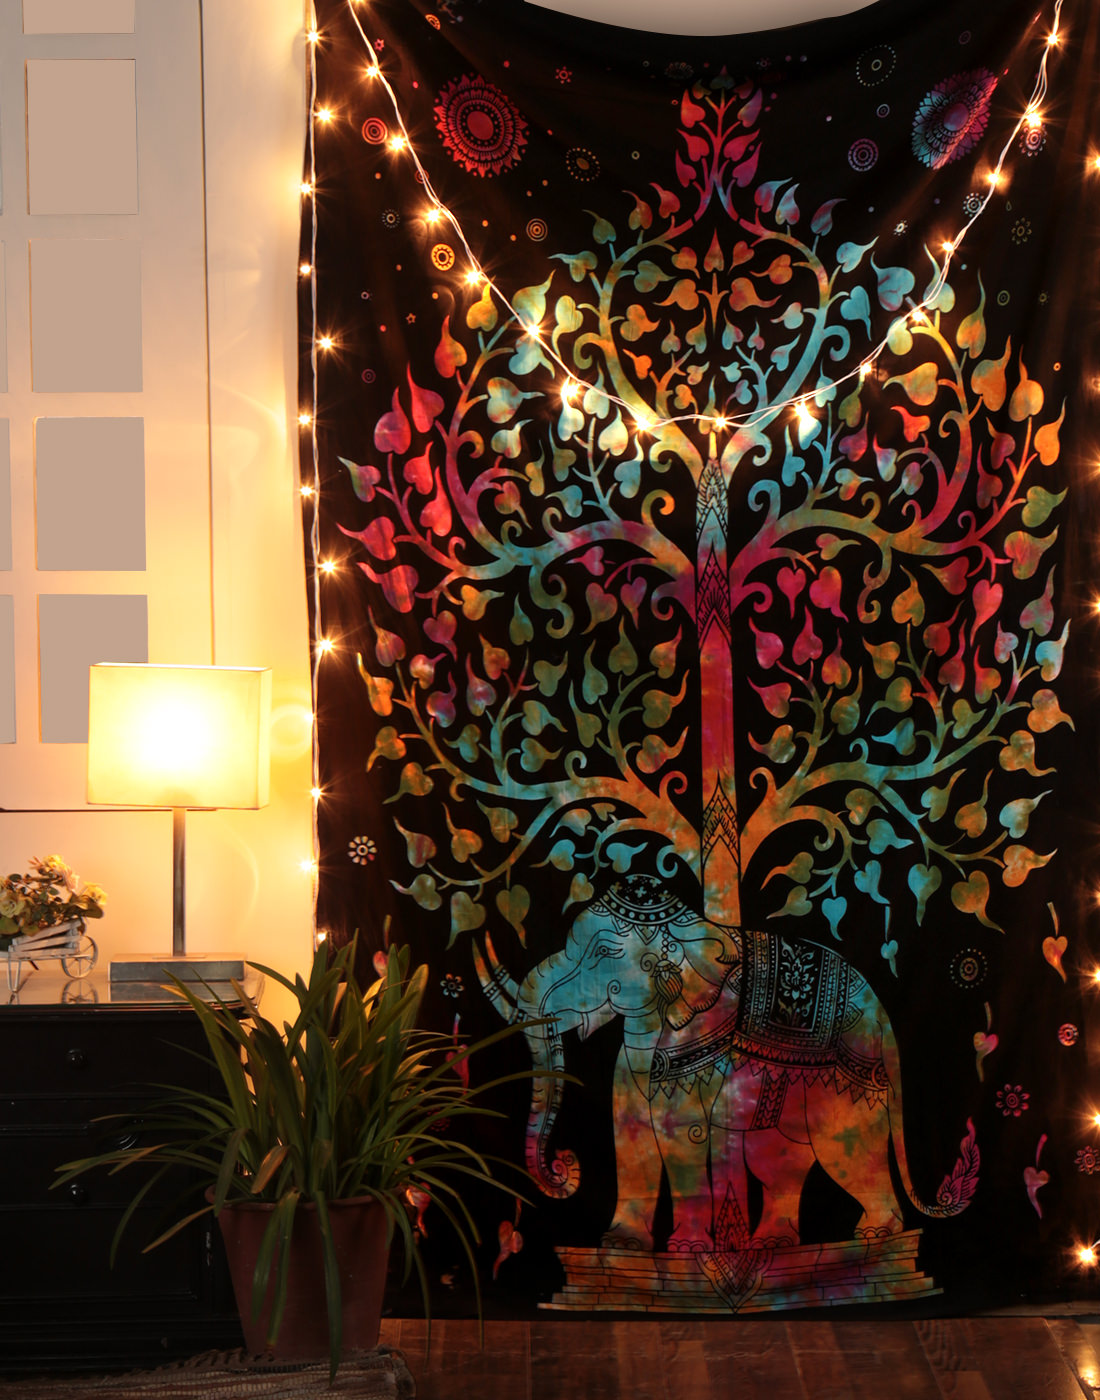 Psychedelic Hippie Tree of Life Tapestry Wall Hanging Decorative Elephant Mandala Wall... by Rajrang